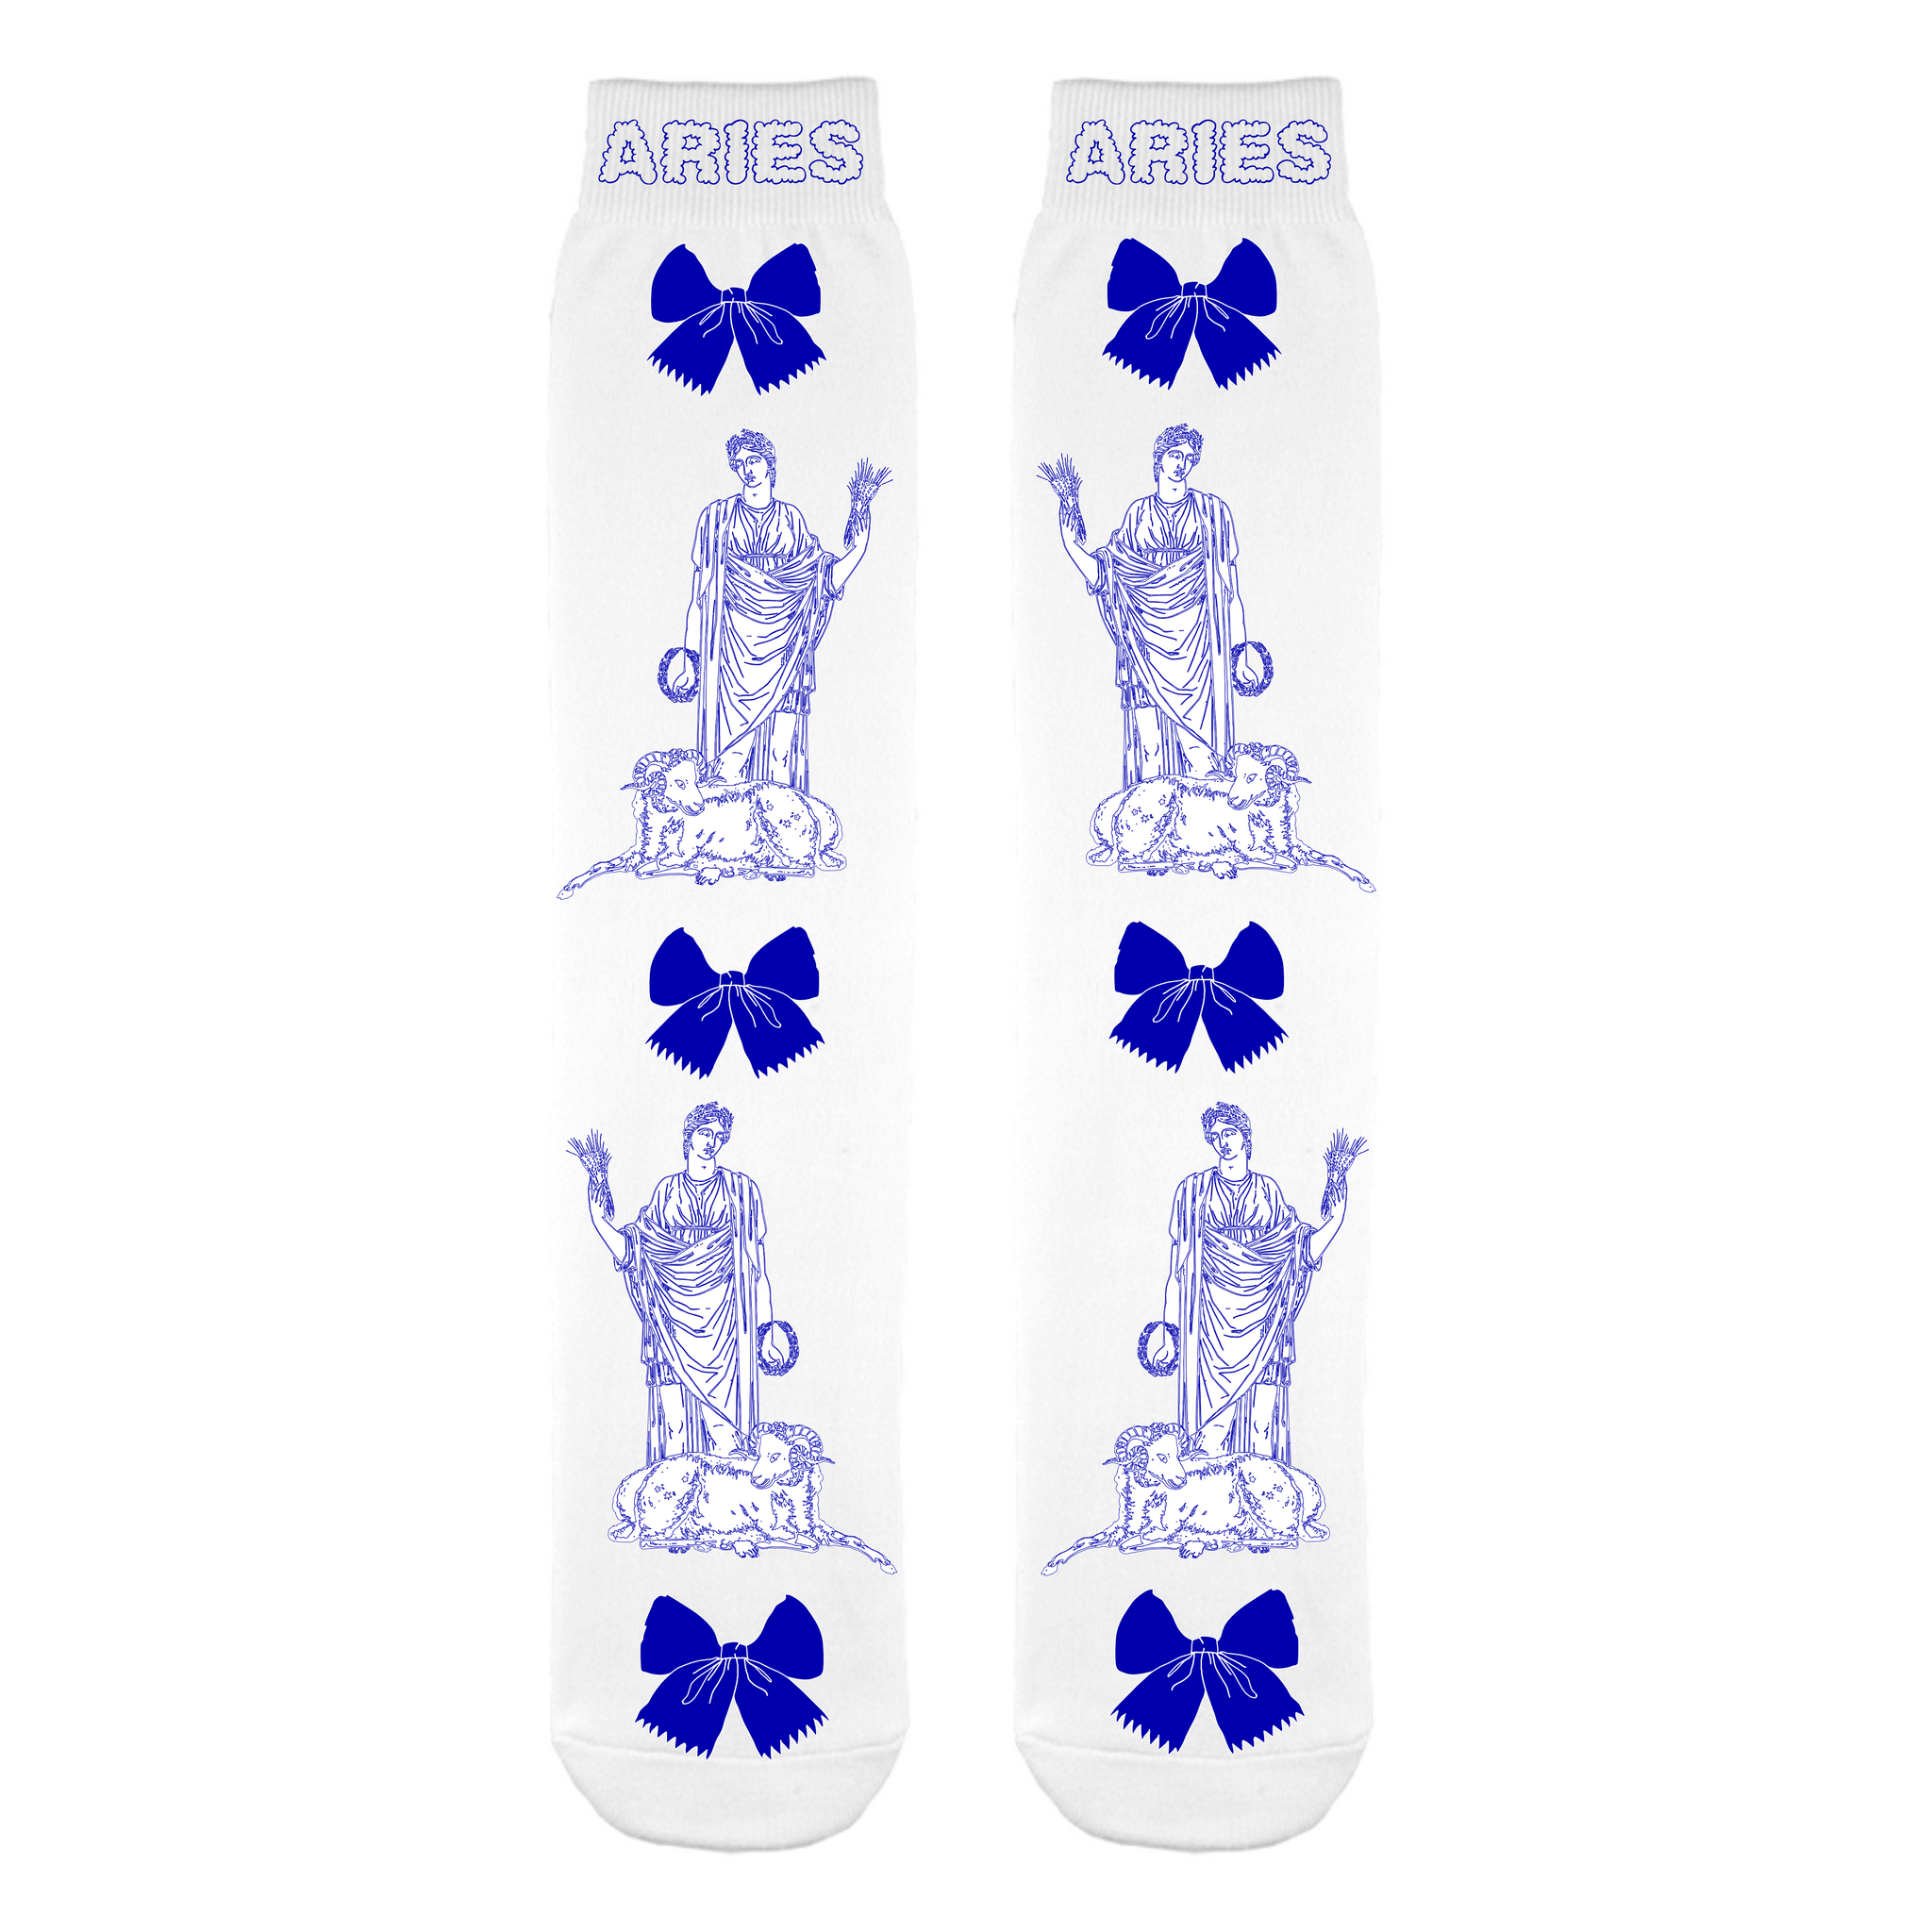 Aries Navy & White Socks